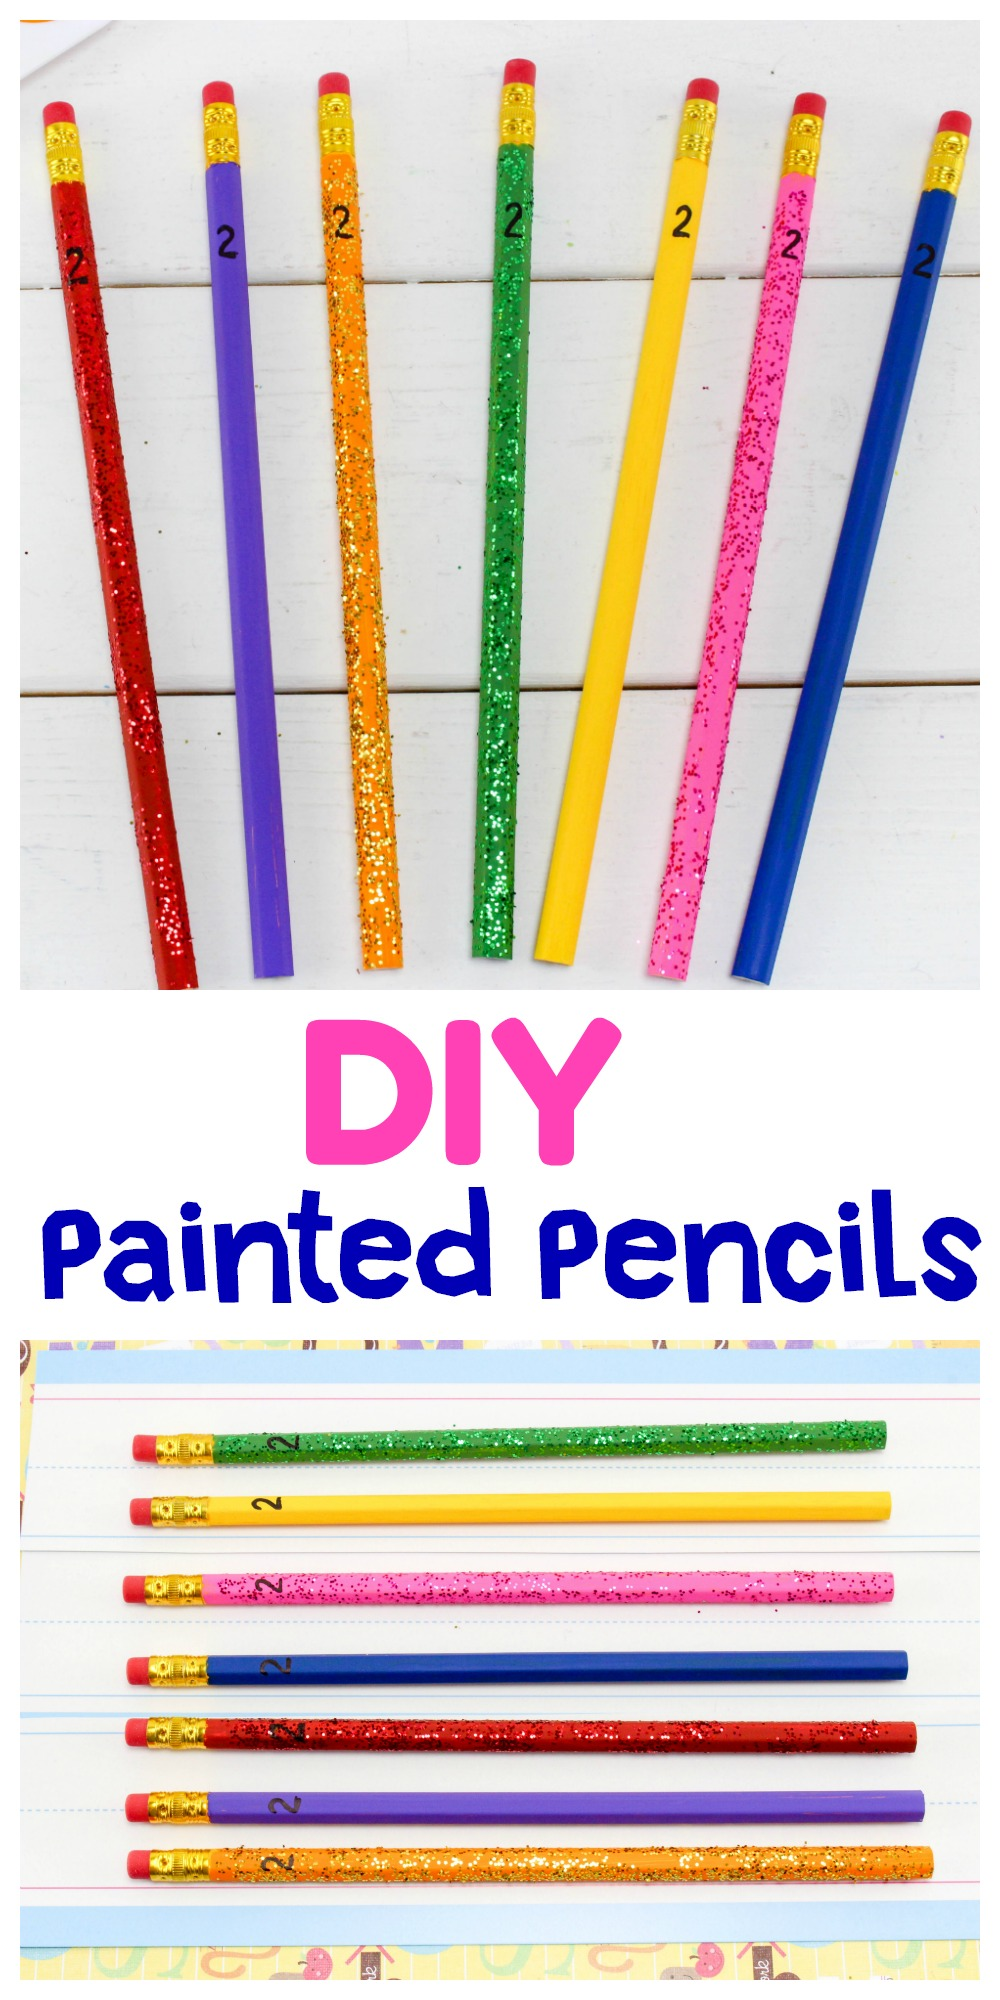 Yellow pencils are boring aren't they? Check out these cute DIY Painted Pencils. It's super easy to glam them up and send them to school with the kids!